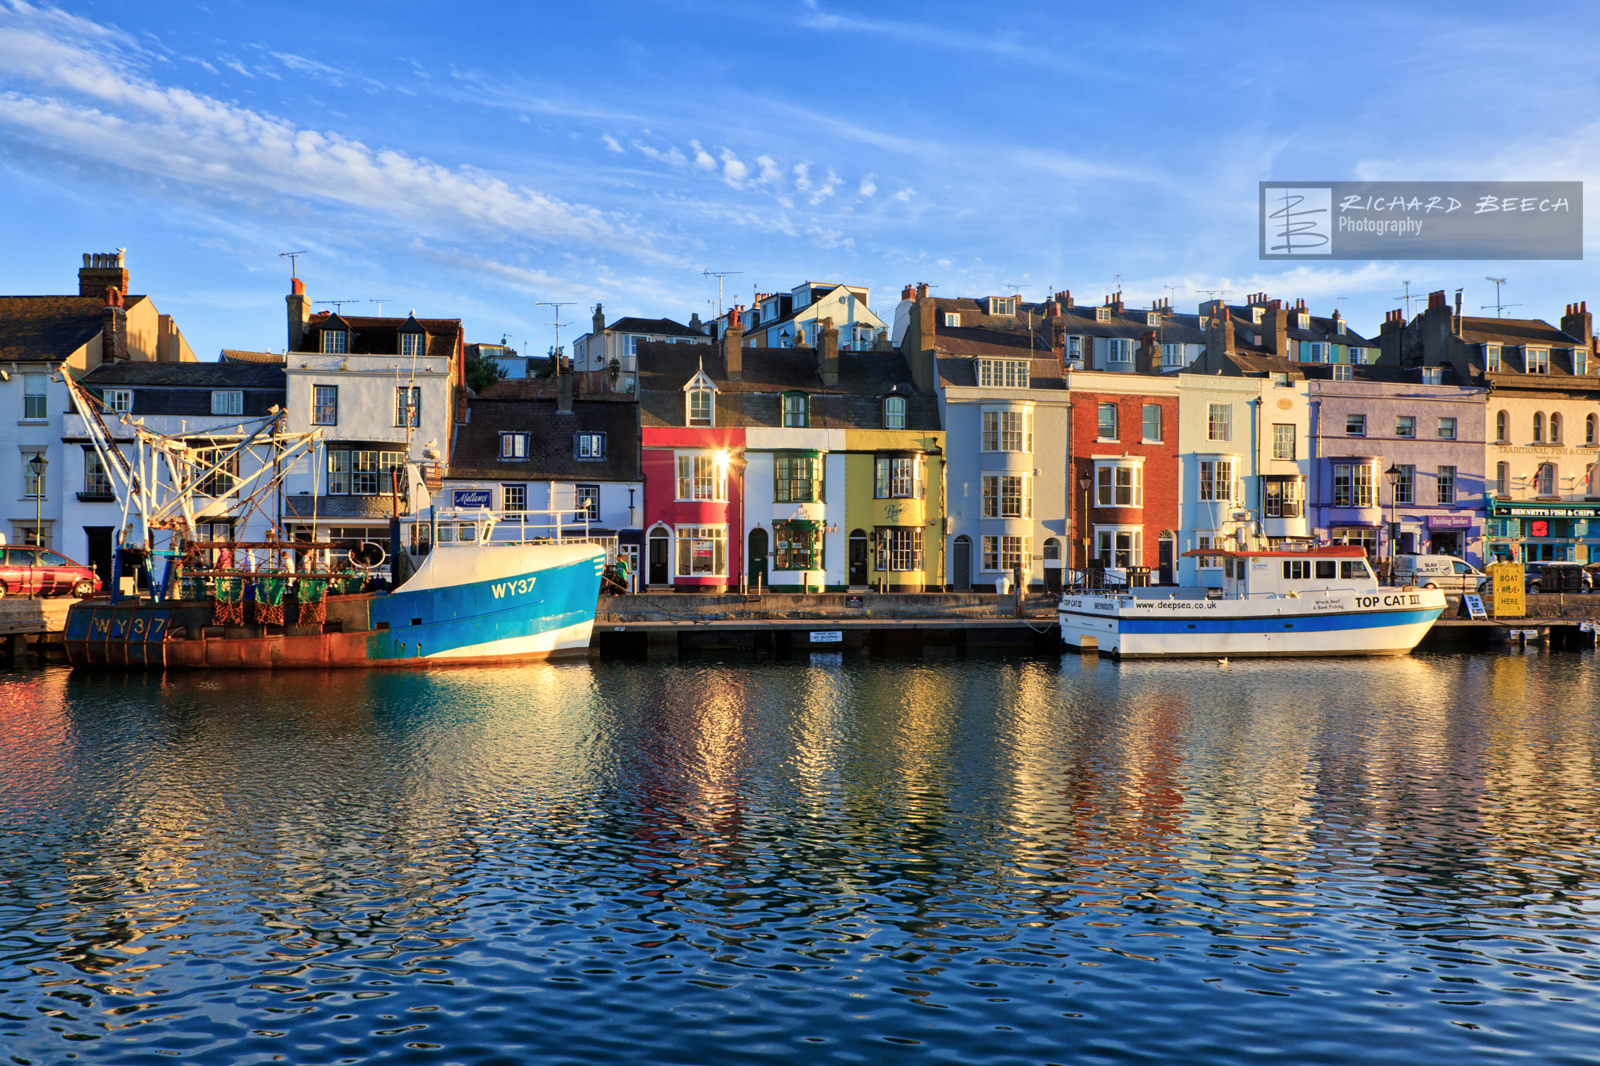 Weymouth Harbour by Evening Light